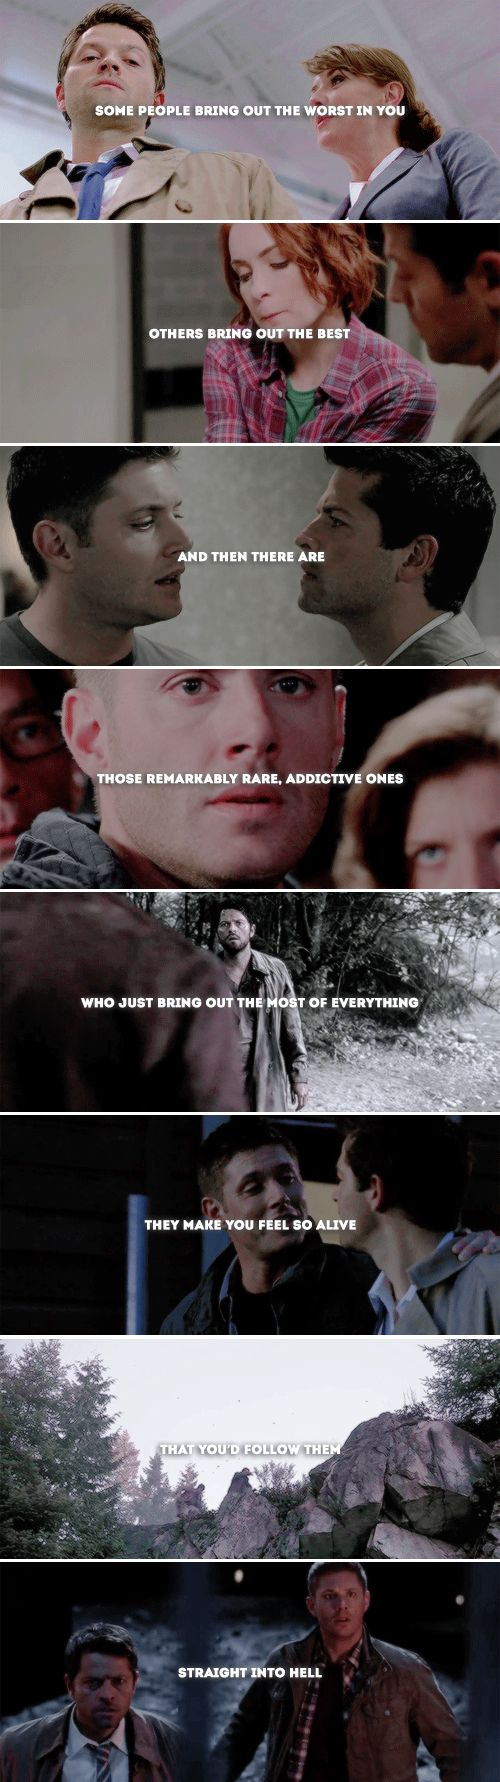 some people bring out the worst in you. others bring out the best. and then there are those remarkably rare, addictive ones who just bring out the most of everything. they make you feel so alive that you'd follow them straight into hell. #spn #destiel